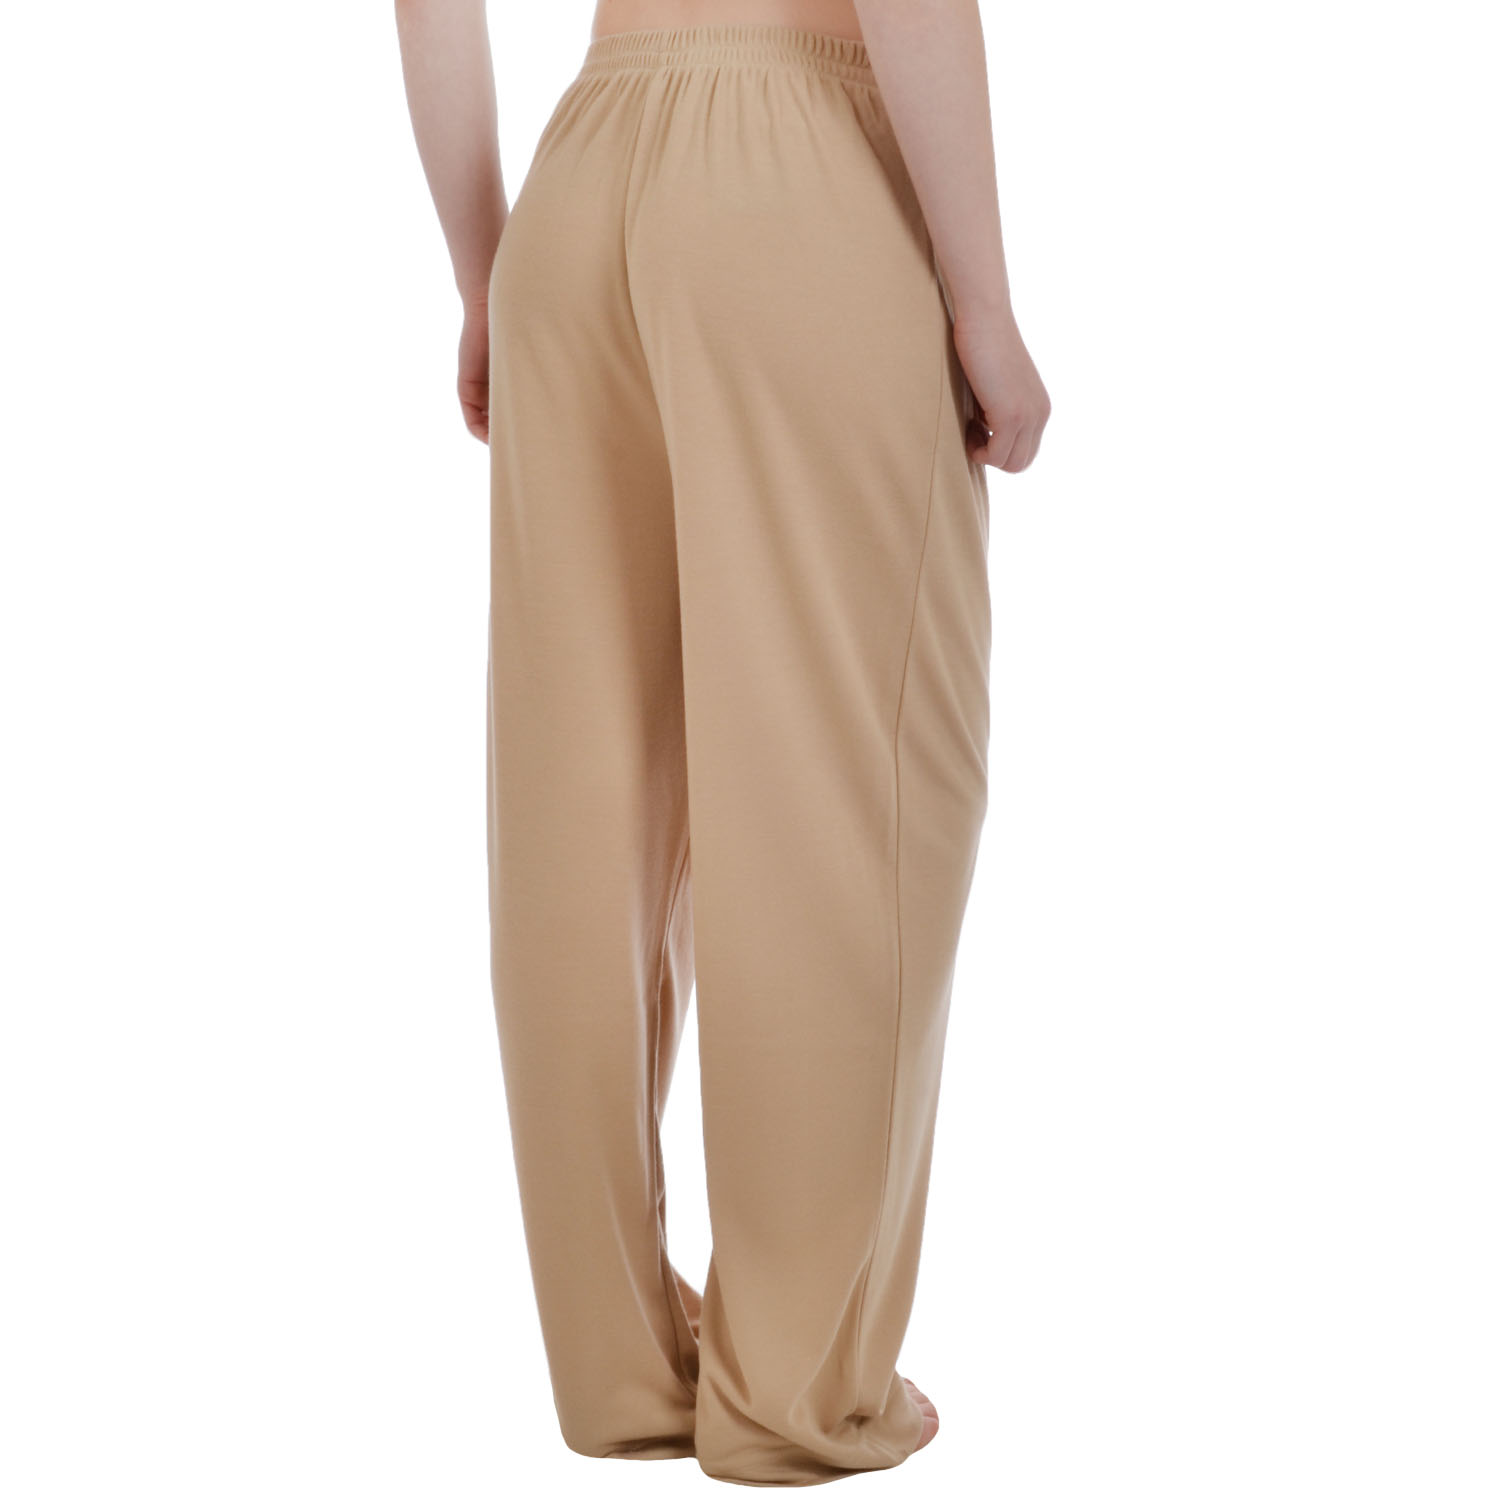 Free shipping on trouser & wide-leg pants for women at evildownloadersuper74k.ga Shop for wide-leg pants & trousers in the latest colors & prints from top brands like Topshop, evildownloadersuper74k.ga, NYDJ, Vince Camuto & more. Enjoy free shipping & returns.